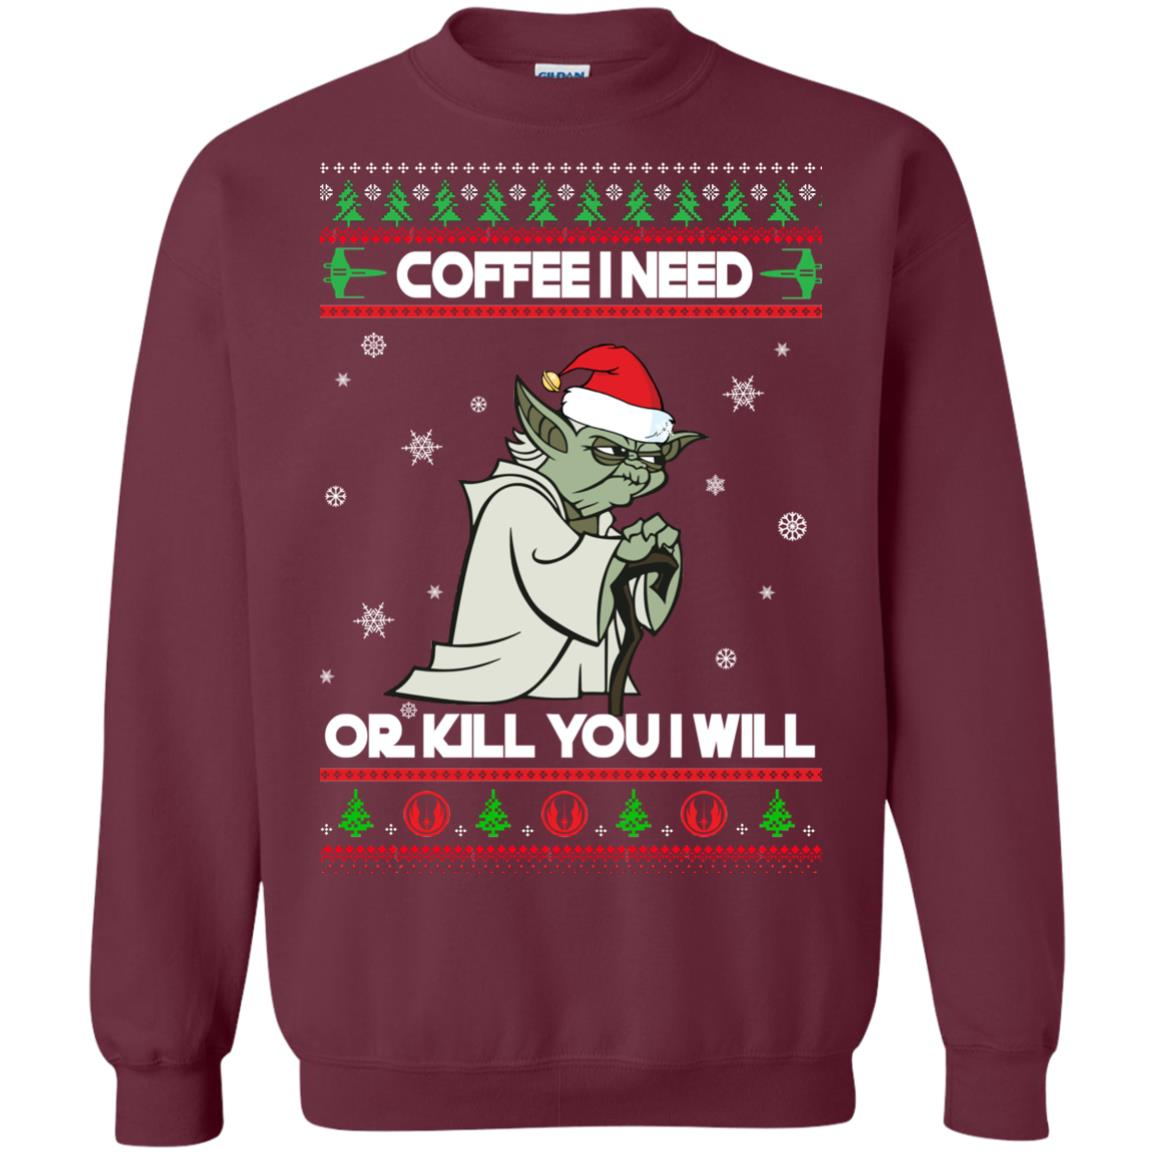 image 1242px Star Wars Yoda Sweater: Coffee I Need Or Kill You I Will Christmas Sweater